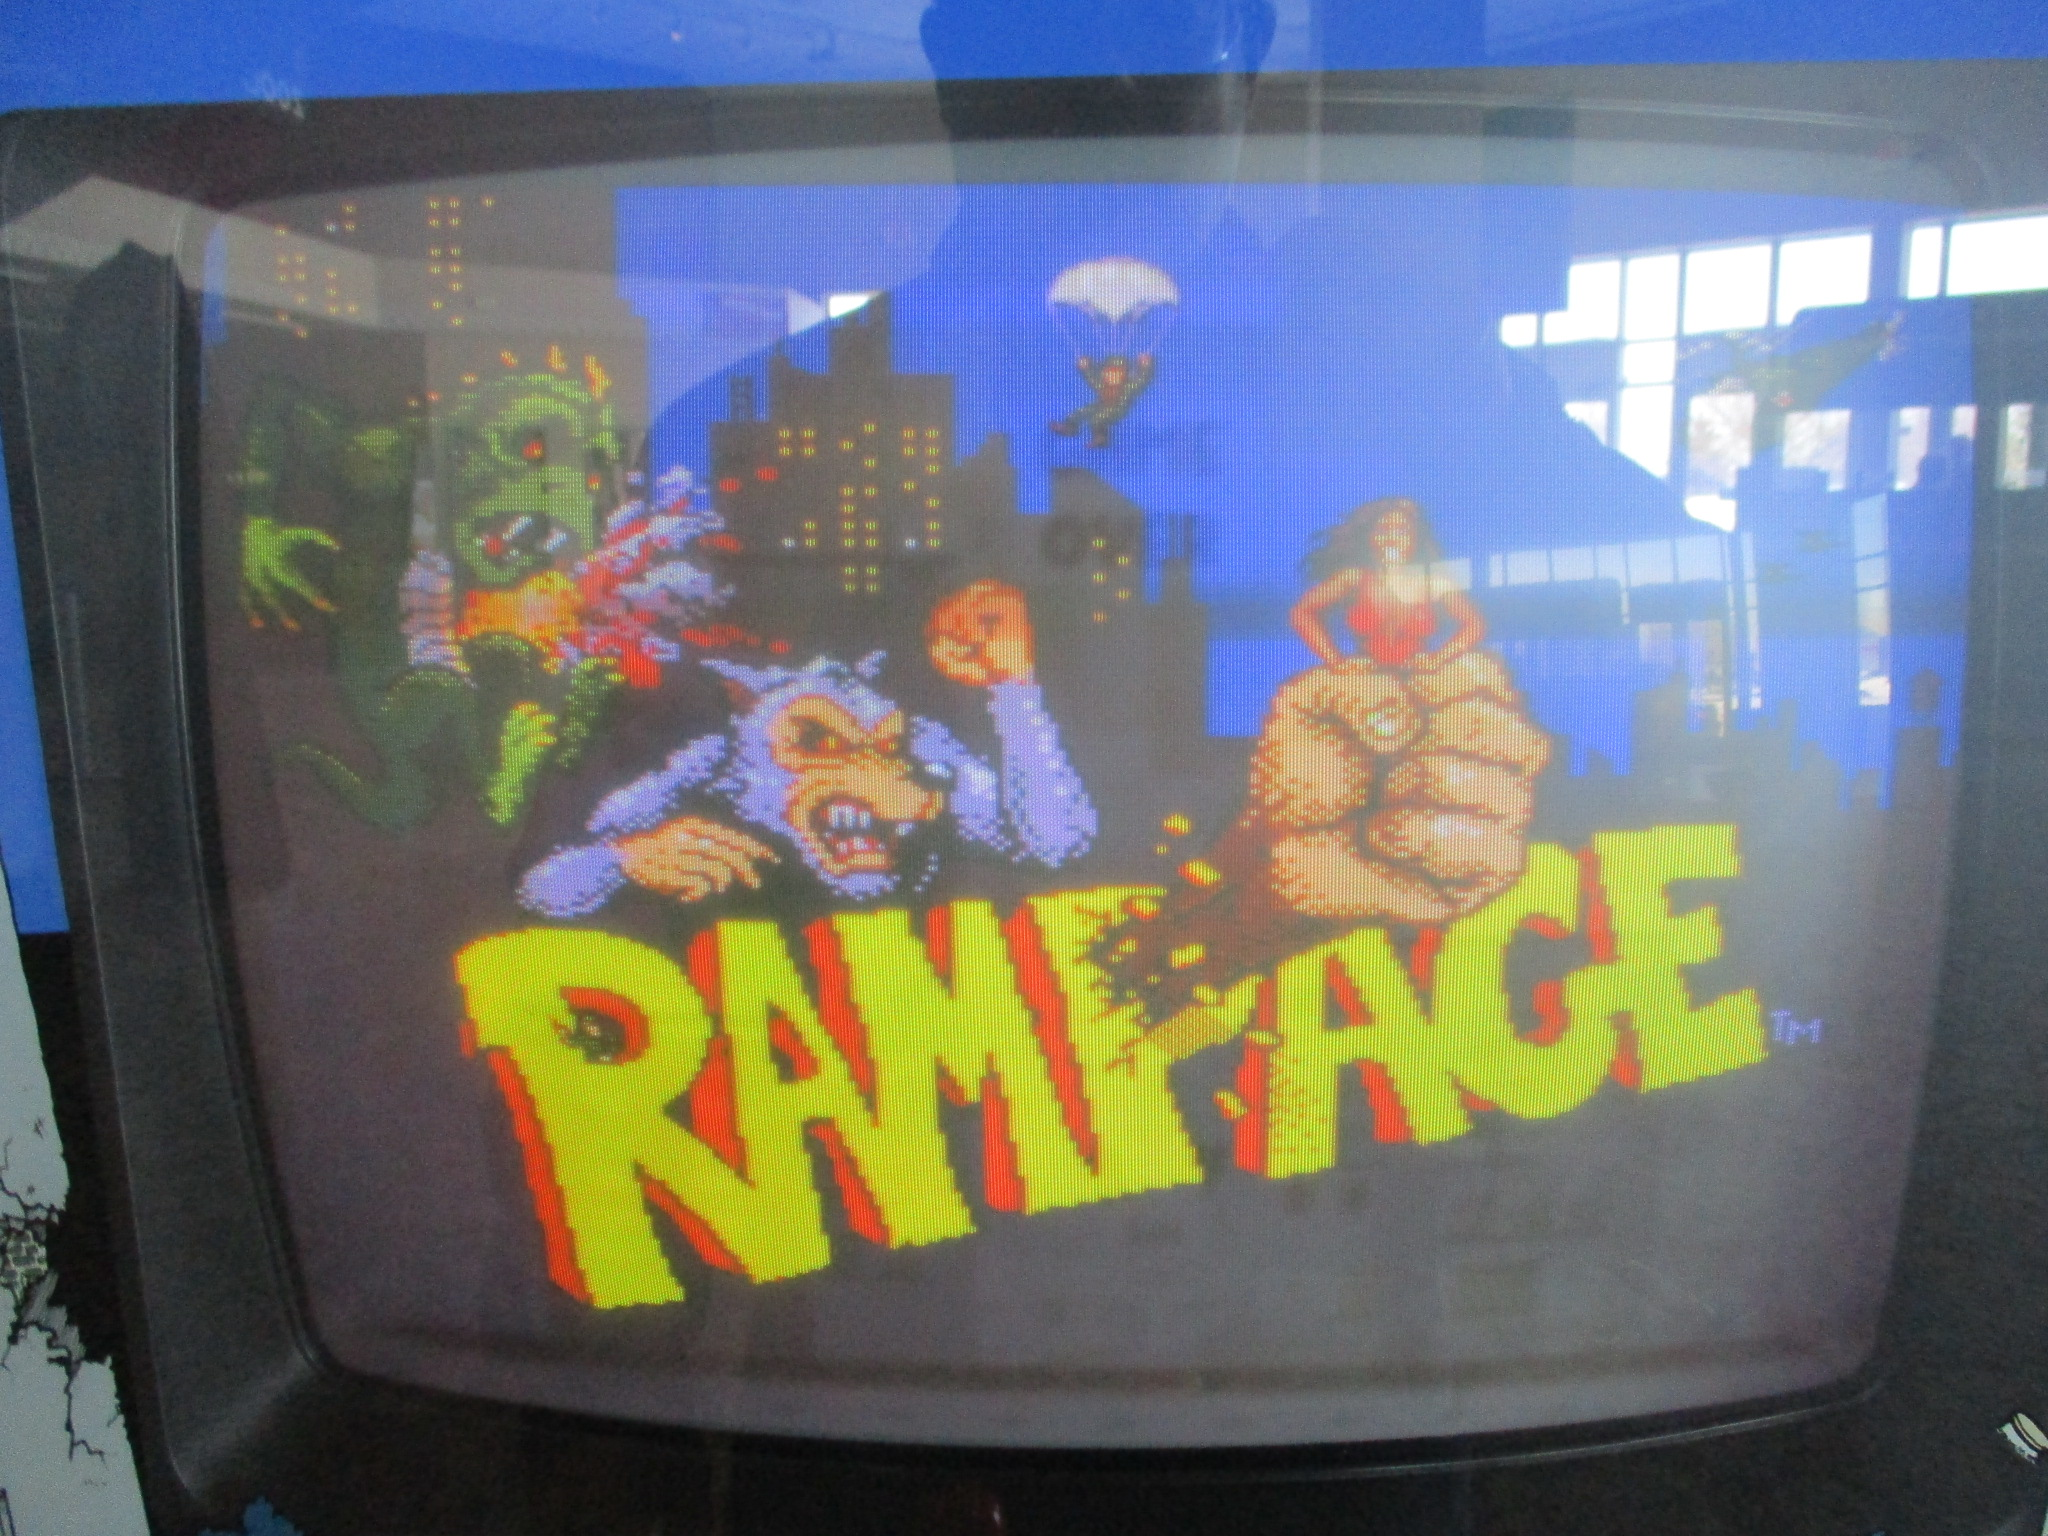 ed1475: Rampage (Arcade) 55,850 points on 2016-02-11 19:59:50